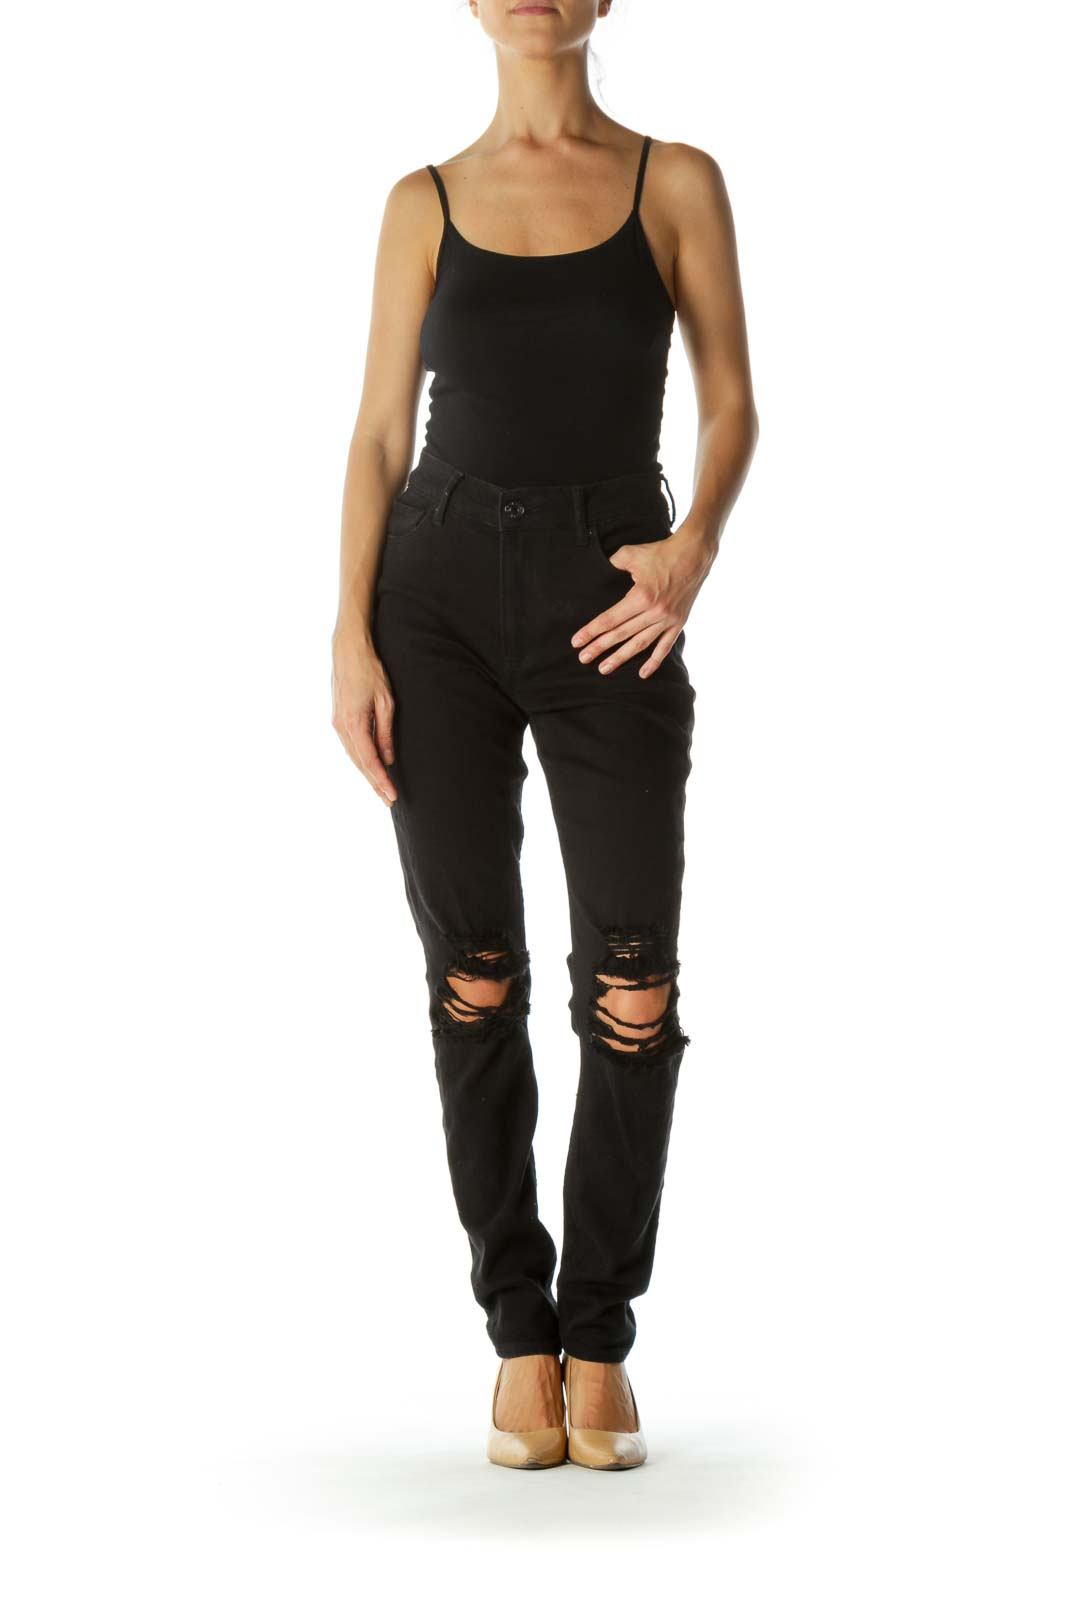 Black Distressed Legging High-Rise Pocketed Stretch Pants